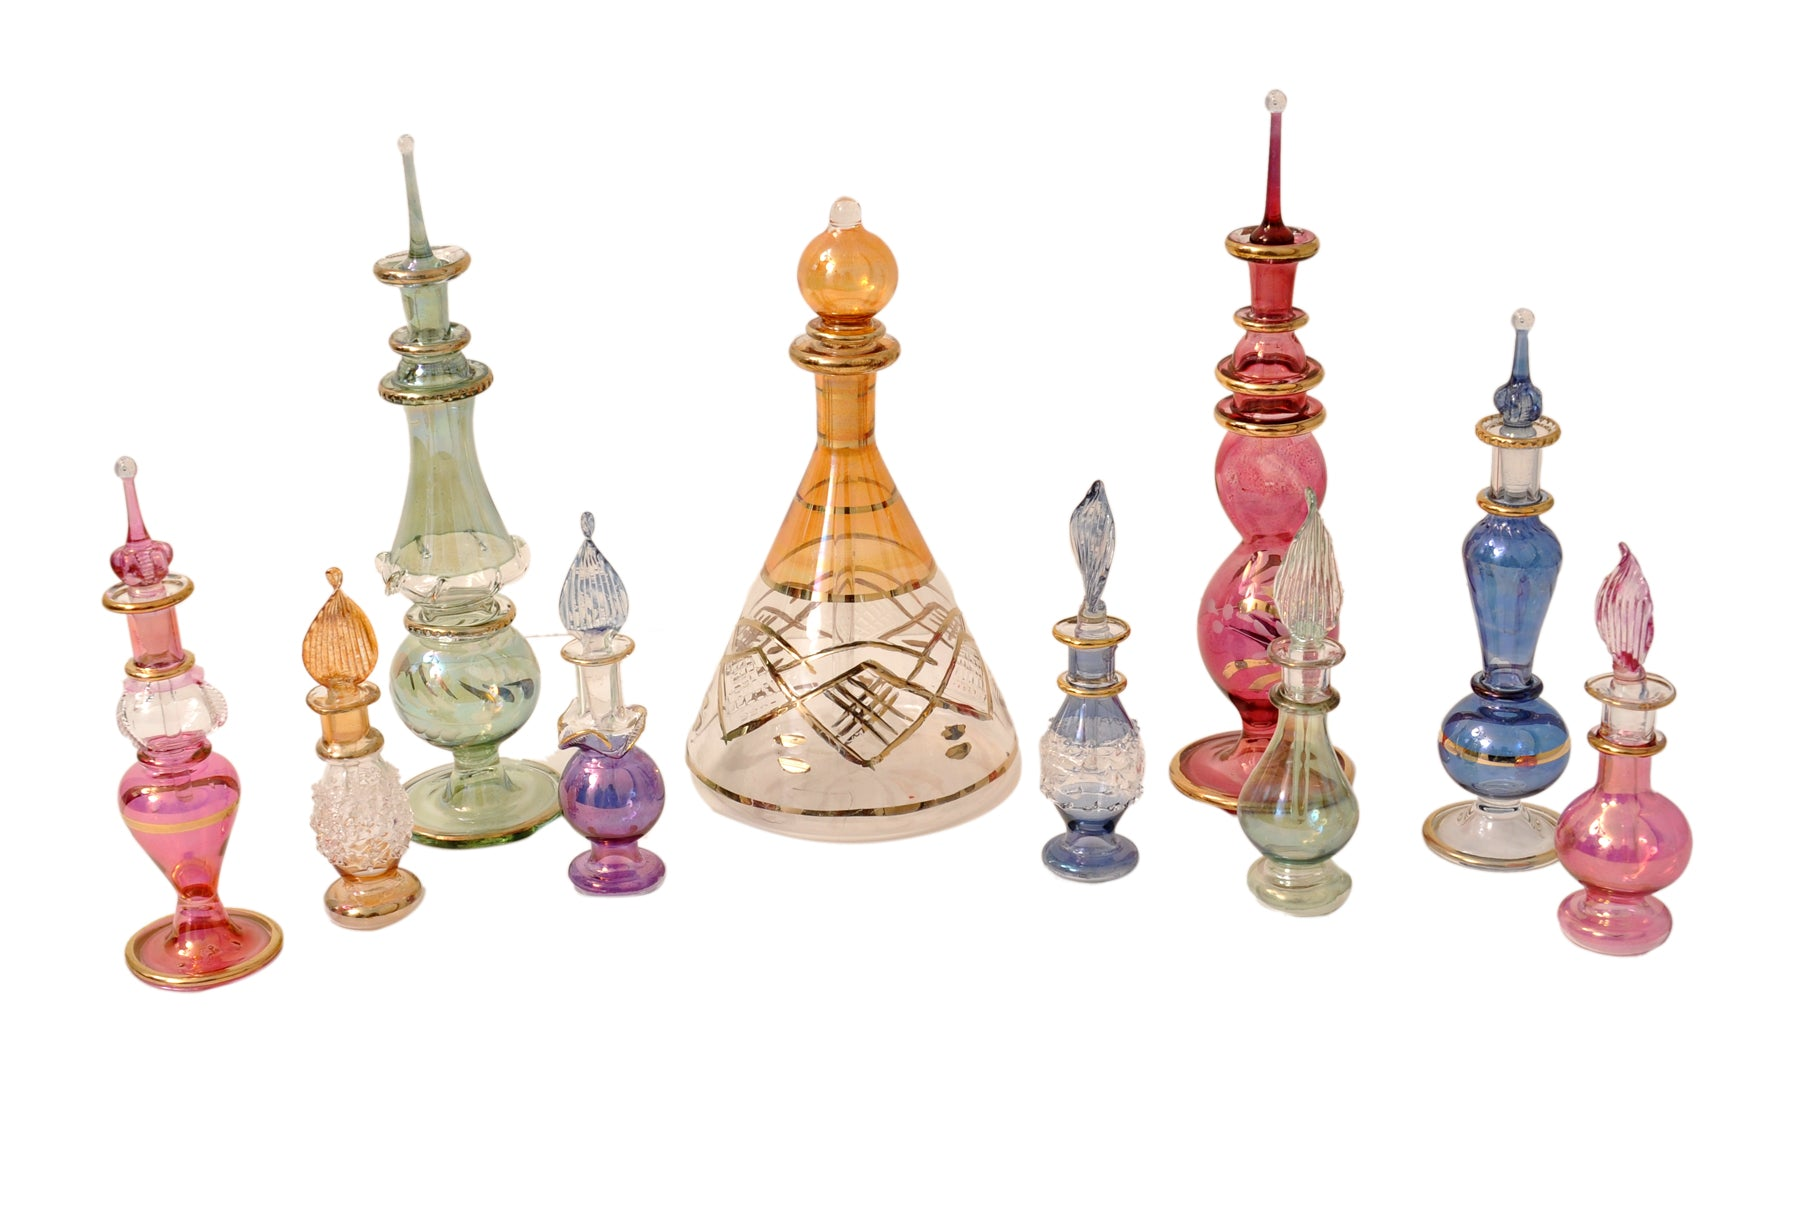 Egyptian perfume bottles Mix Collection a Set of 10 hand Blown Decorative Pyrex Glass Vials by CraftsOfEgypt